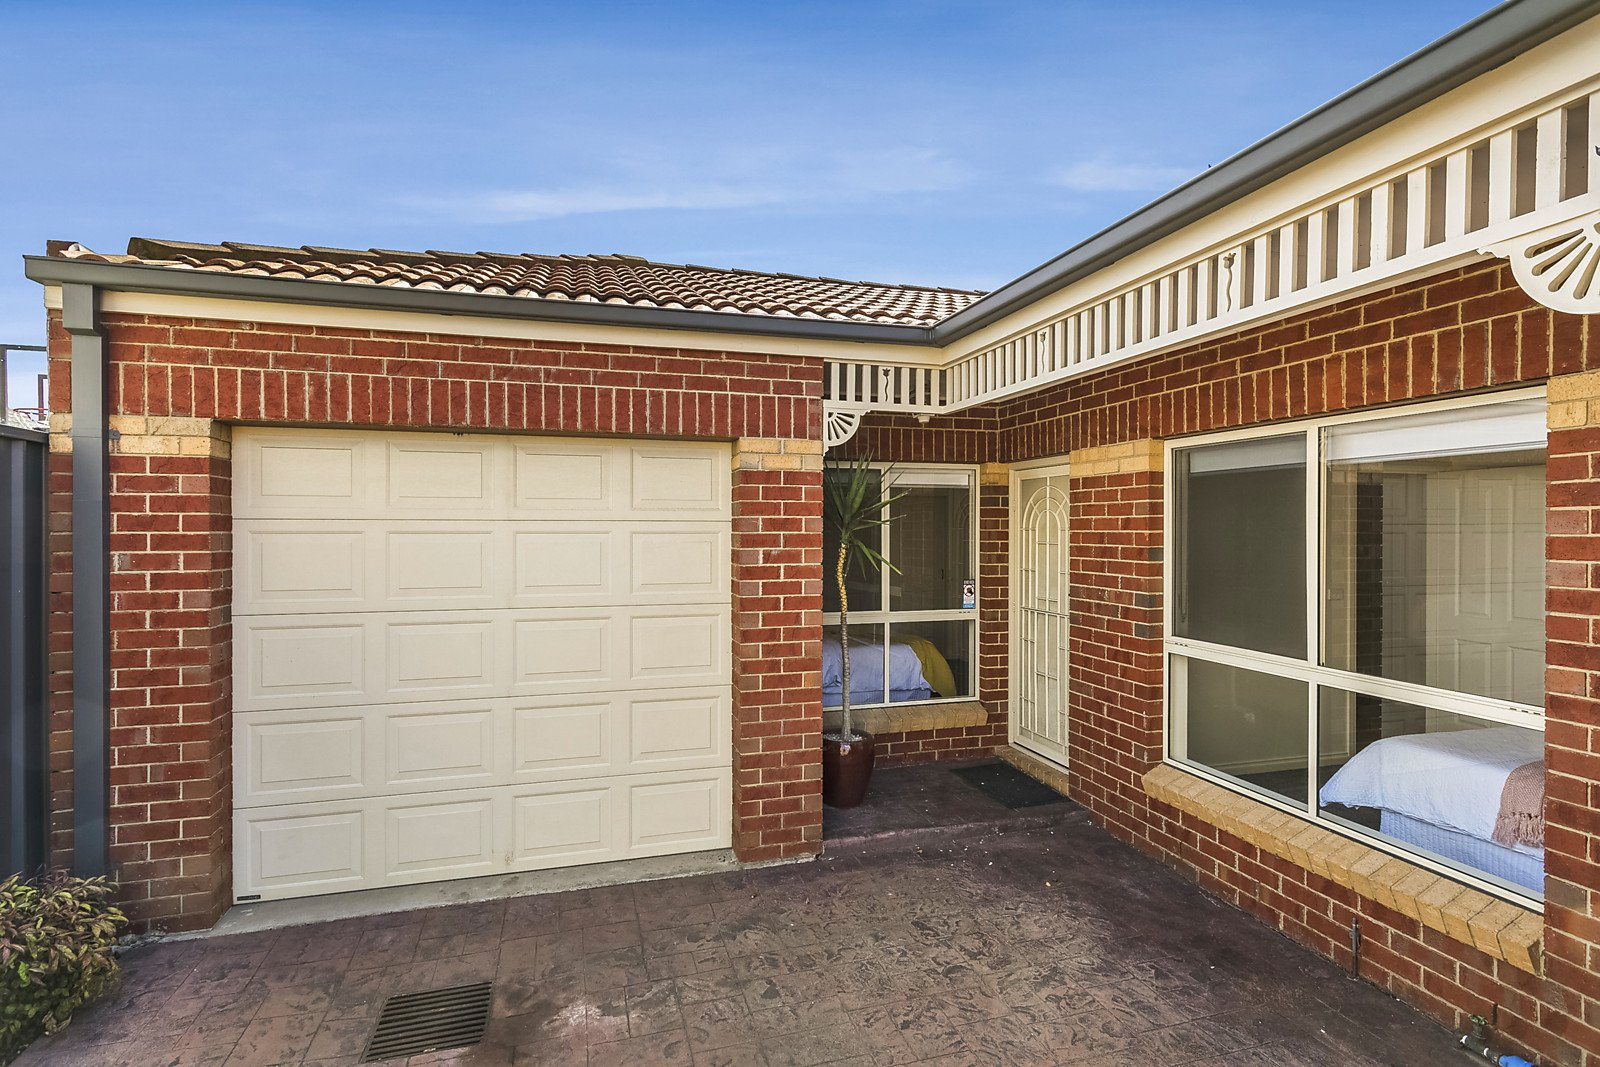 3/139 Bradshaw Street, Essendon, VIC, 3040 image 1